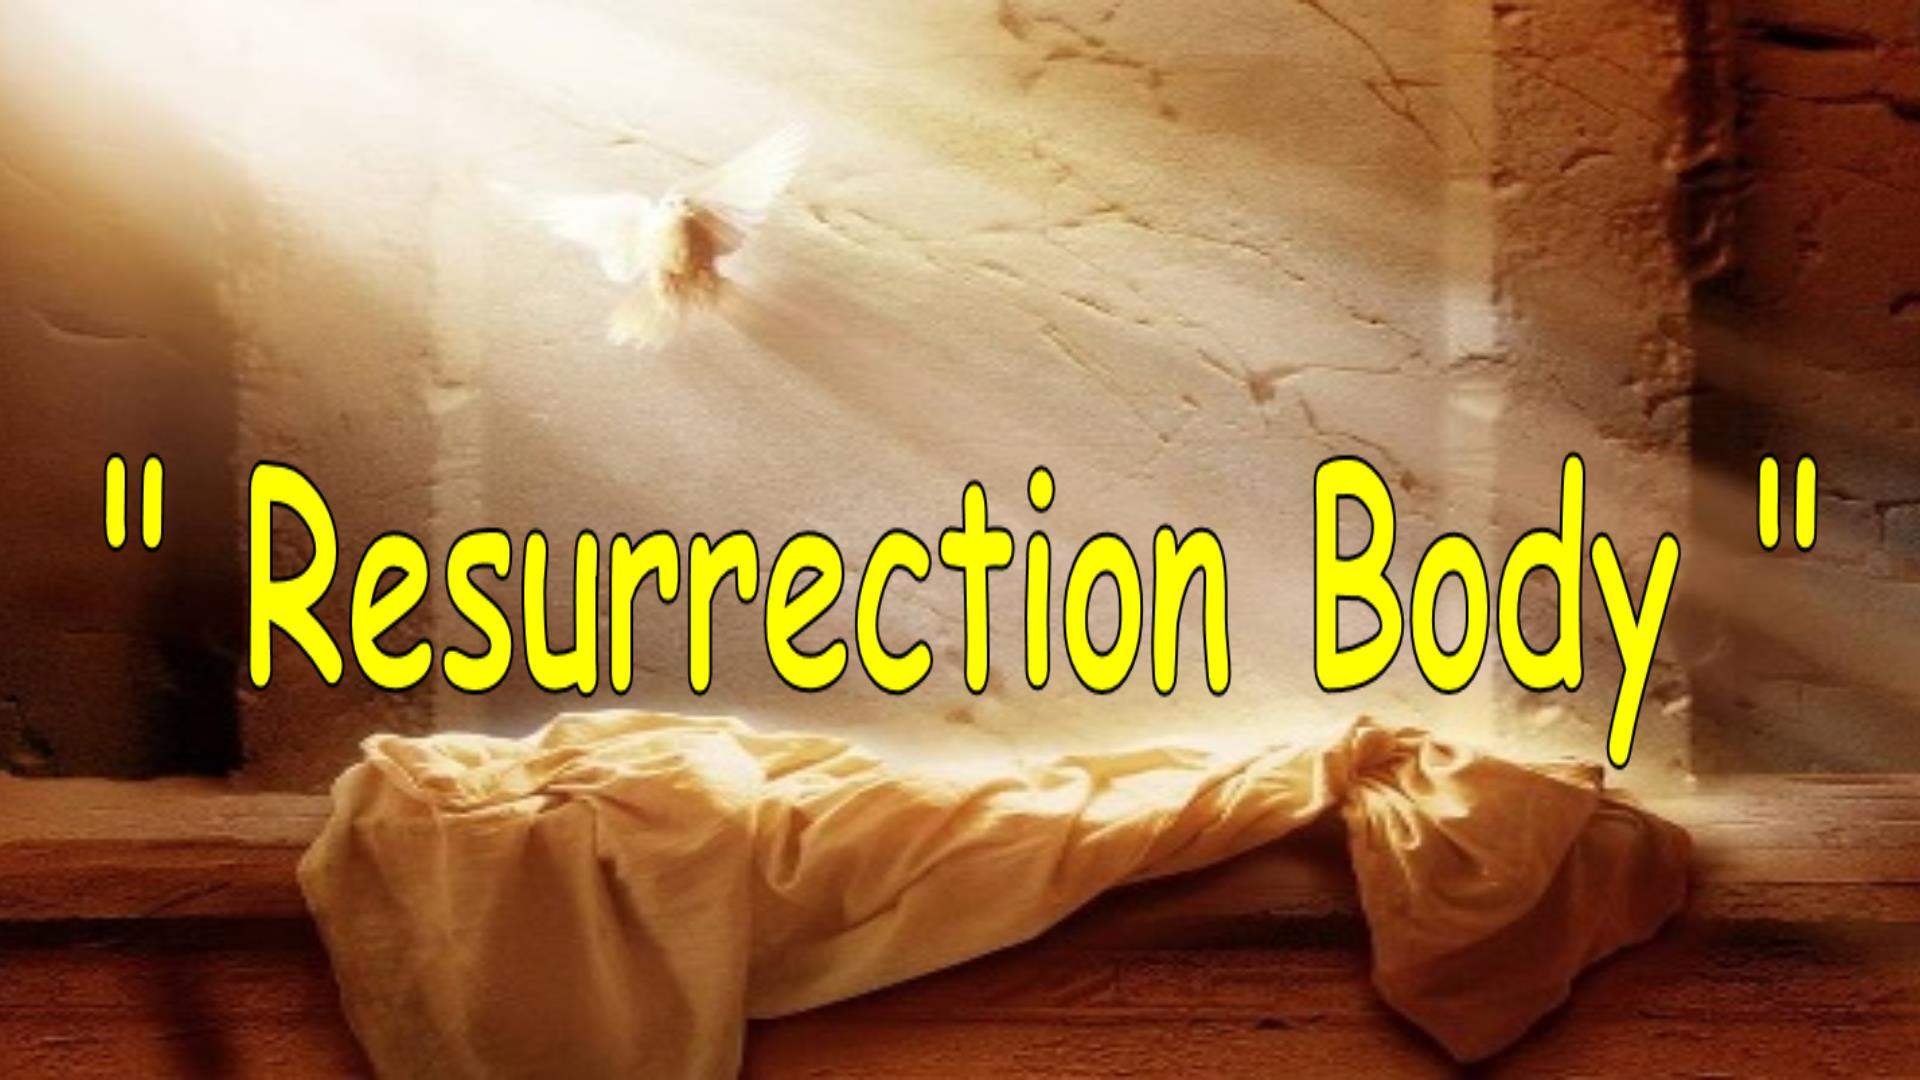 Resurrection Body